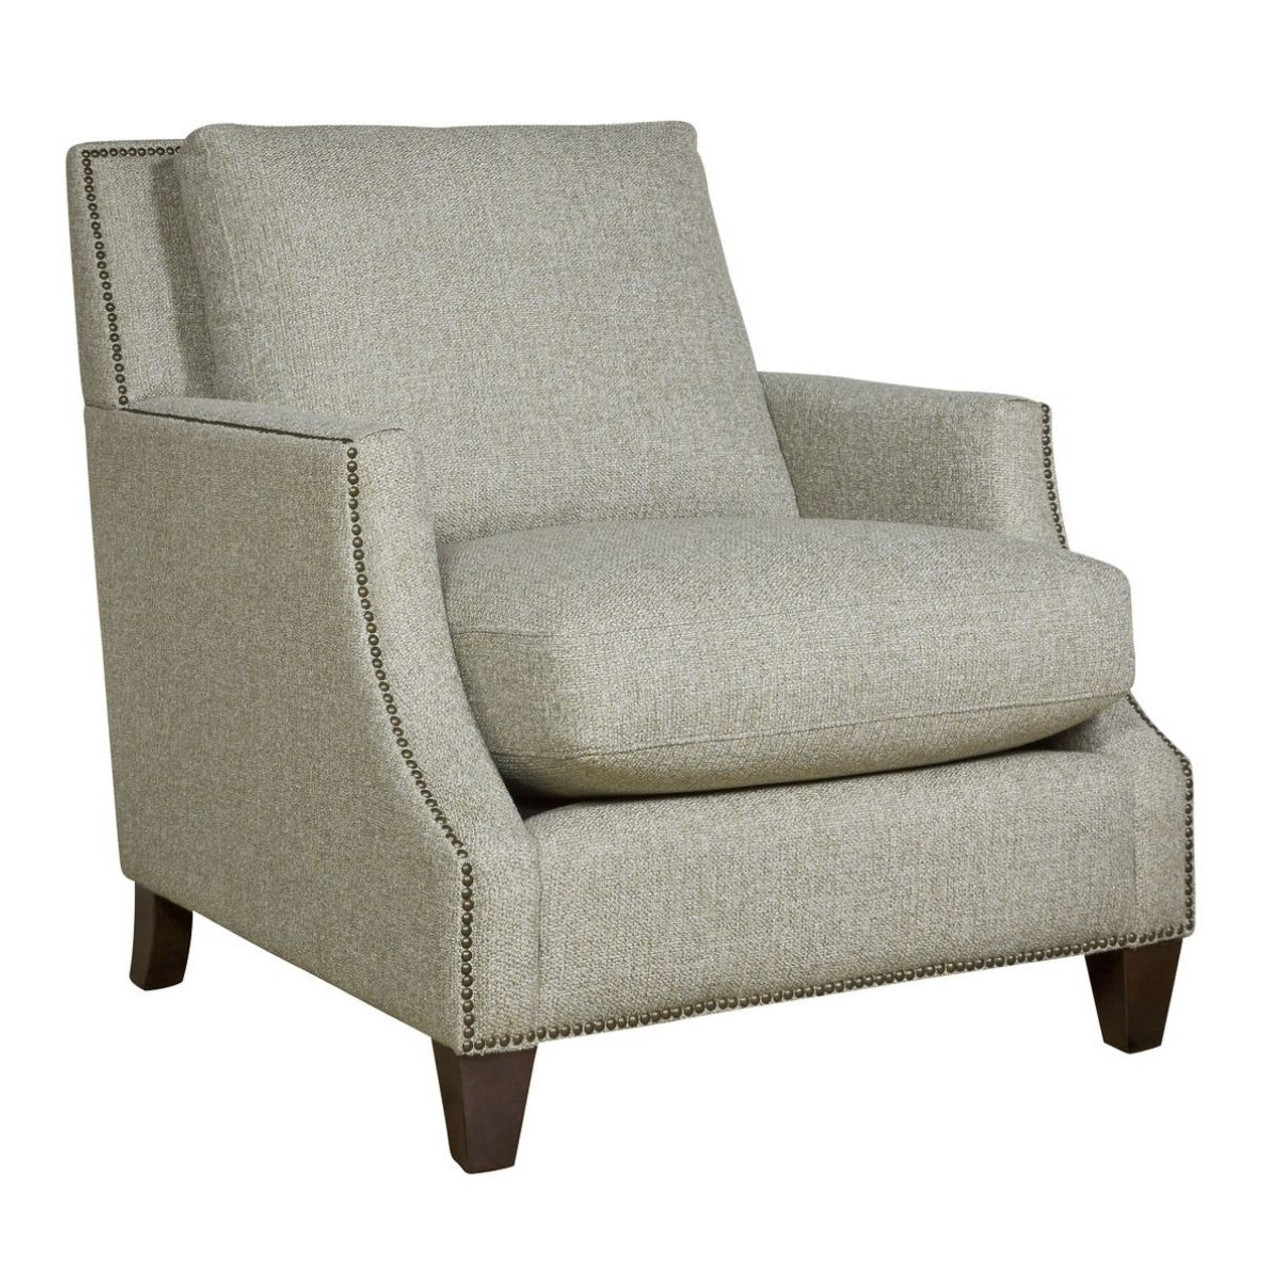 Attirant Brady Scoop Arm Accent Chair With Nailheads